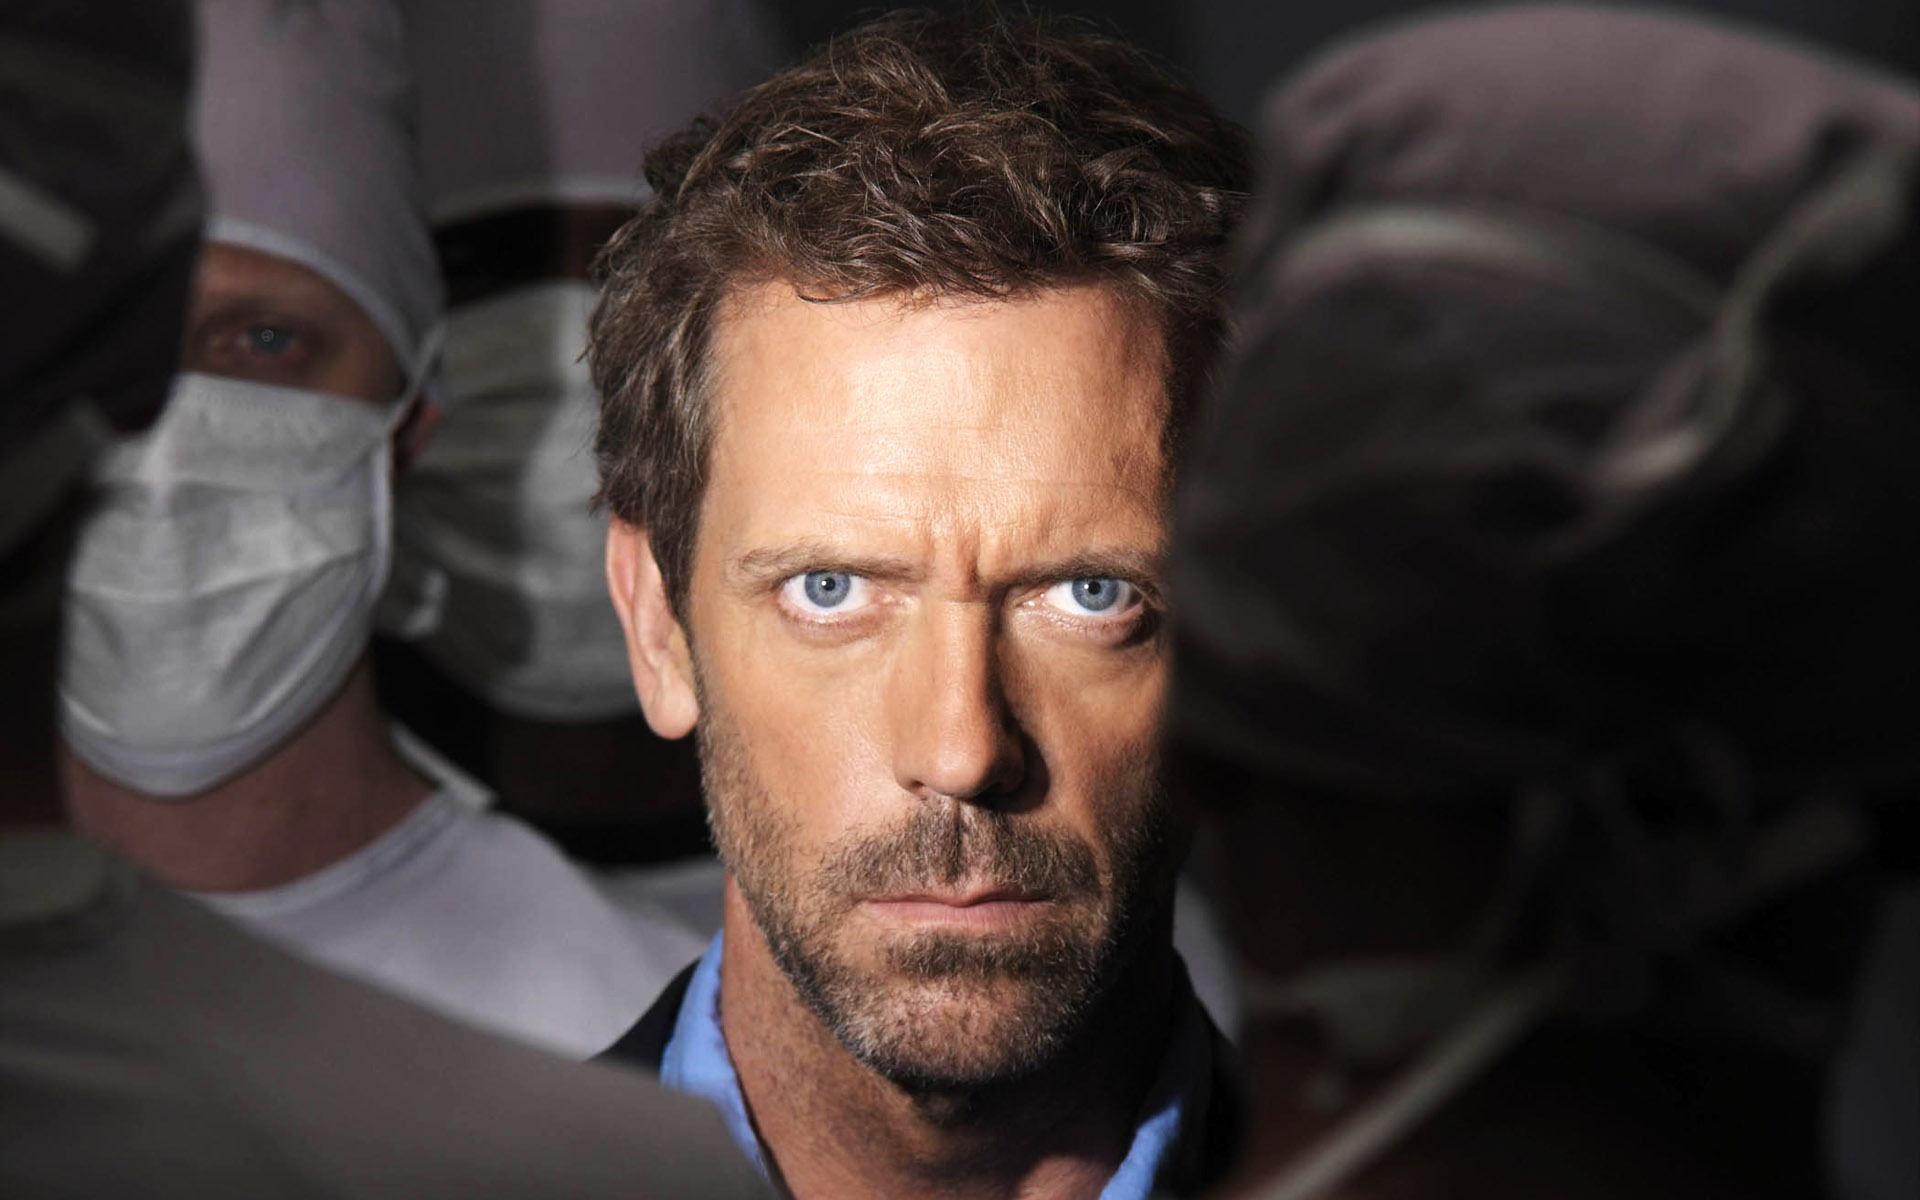 House MD Wallpapers